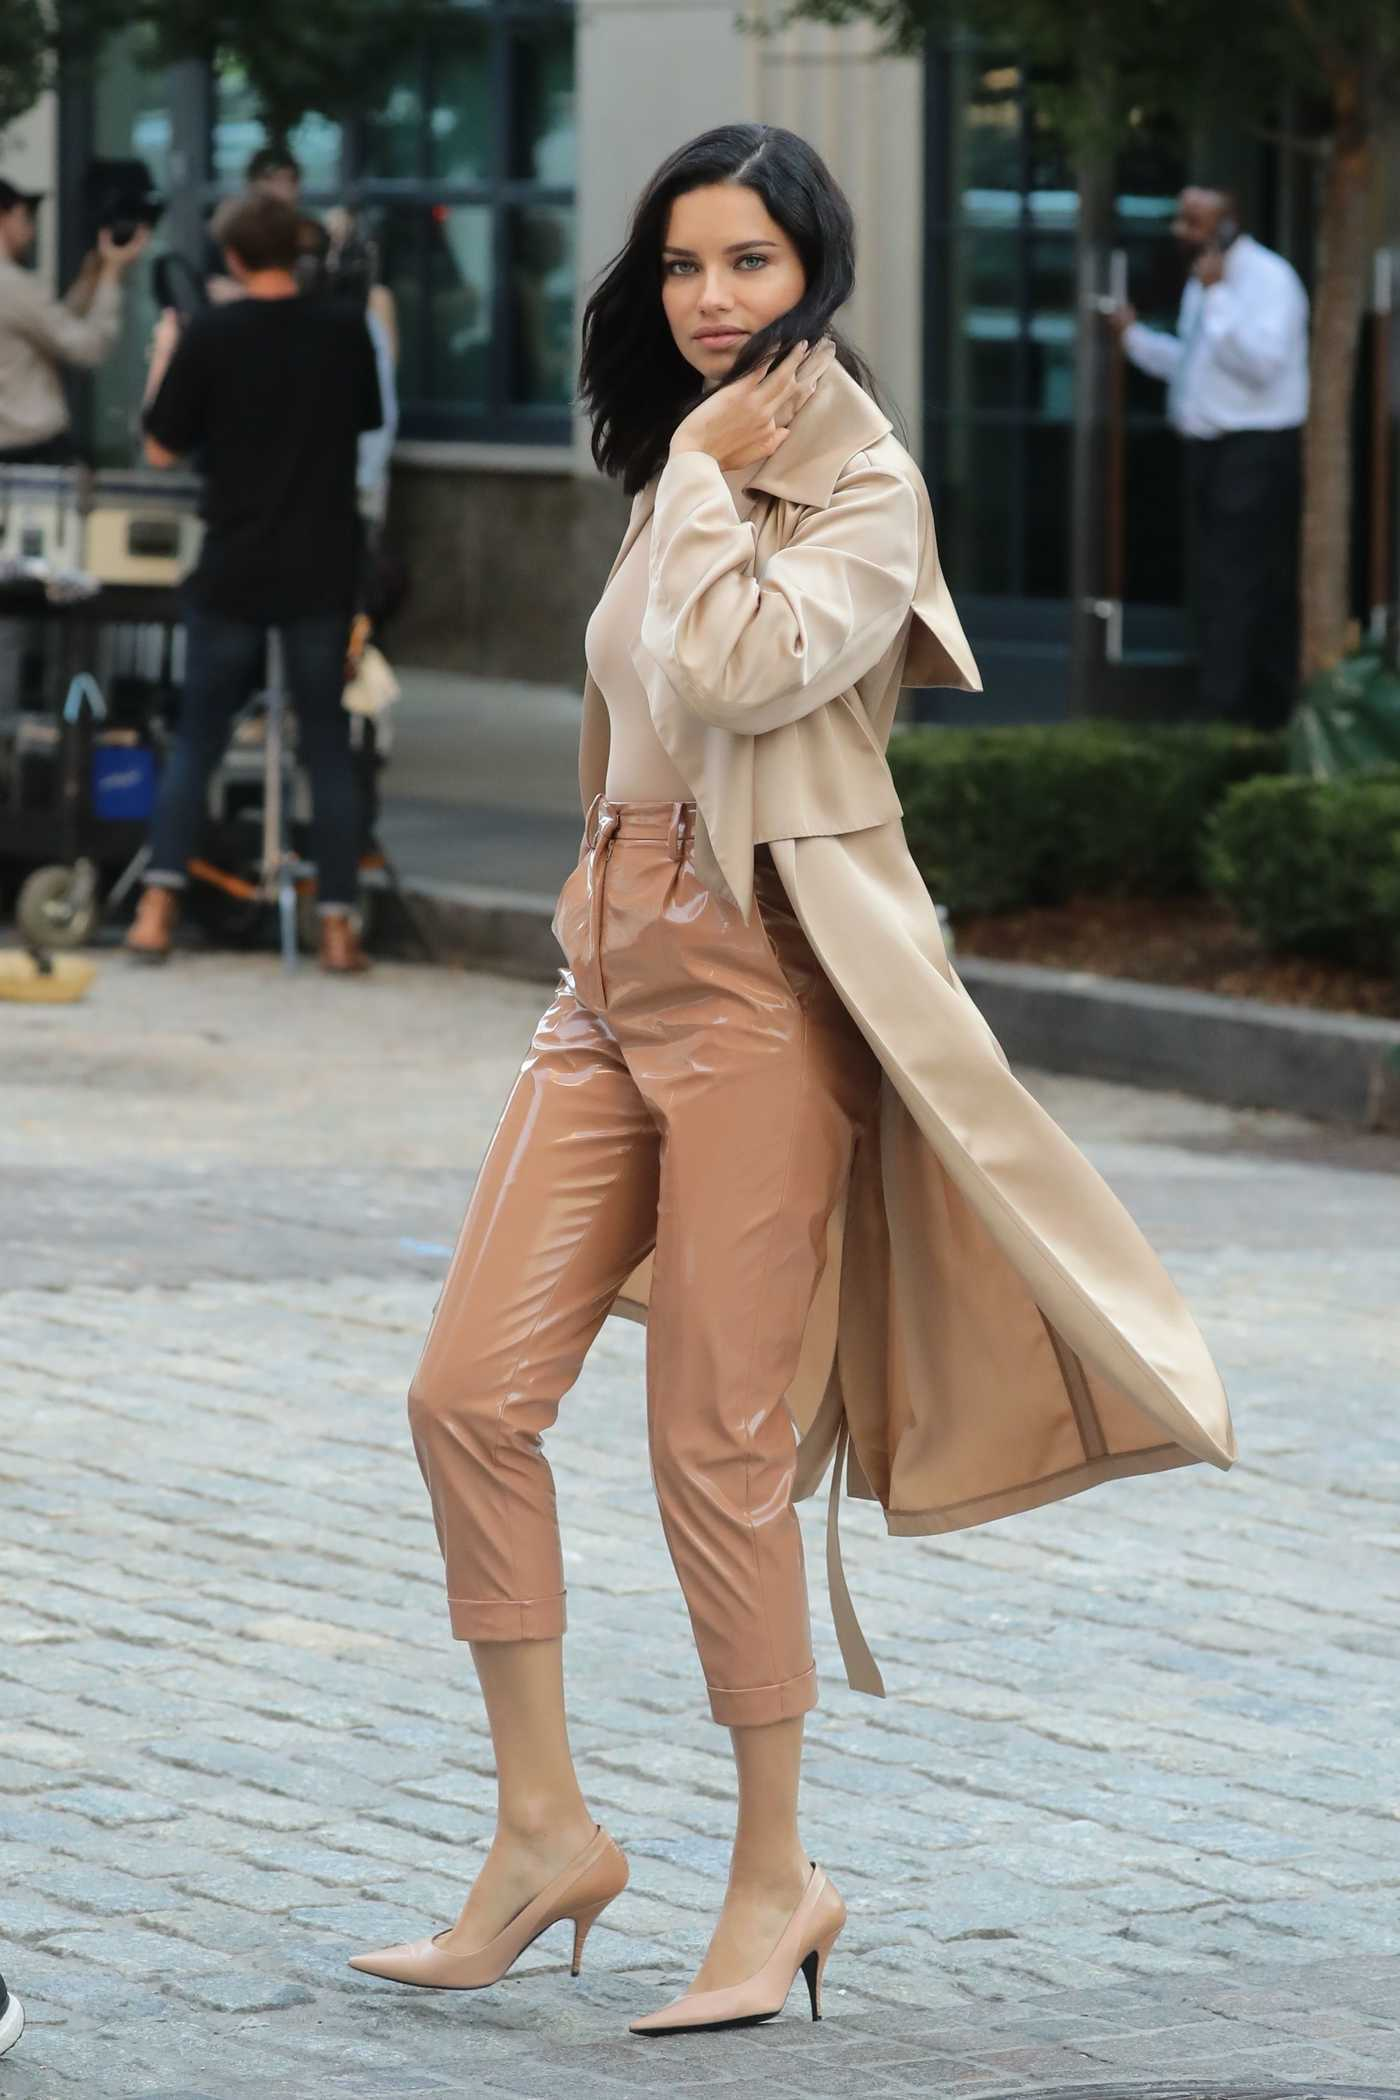 Adriana Lima in a Leather Beige Pants During a Photoshoot in NYC 10/04/2018